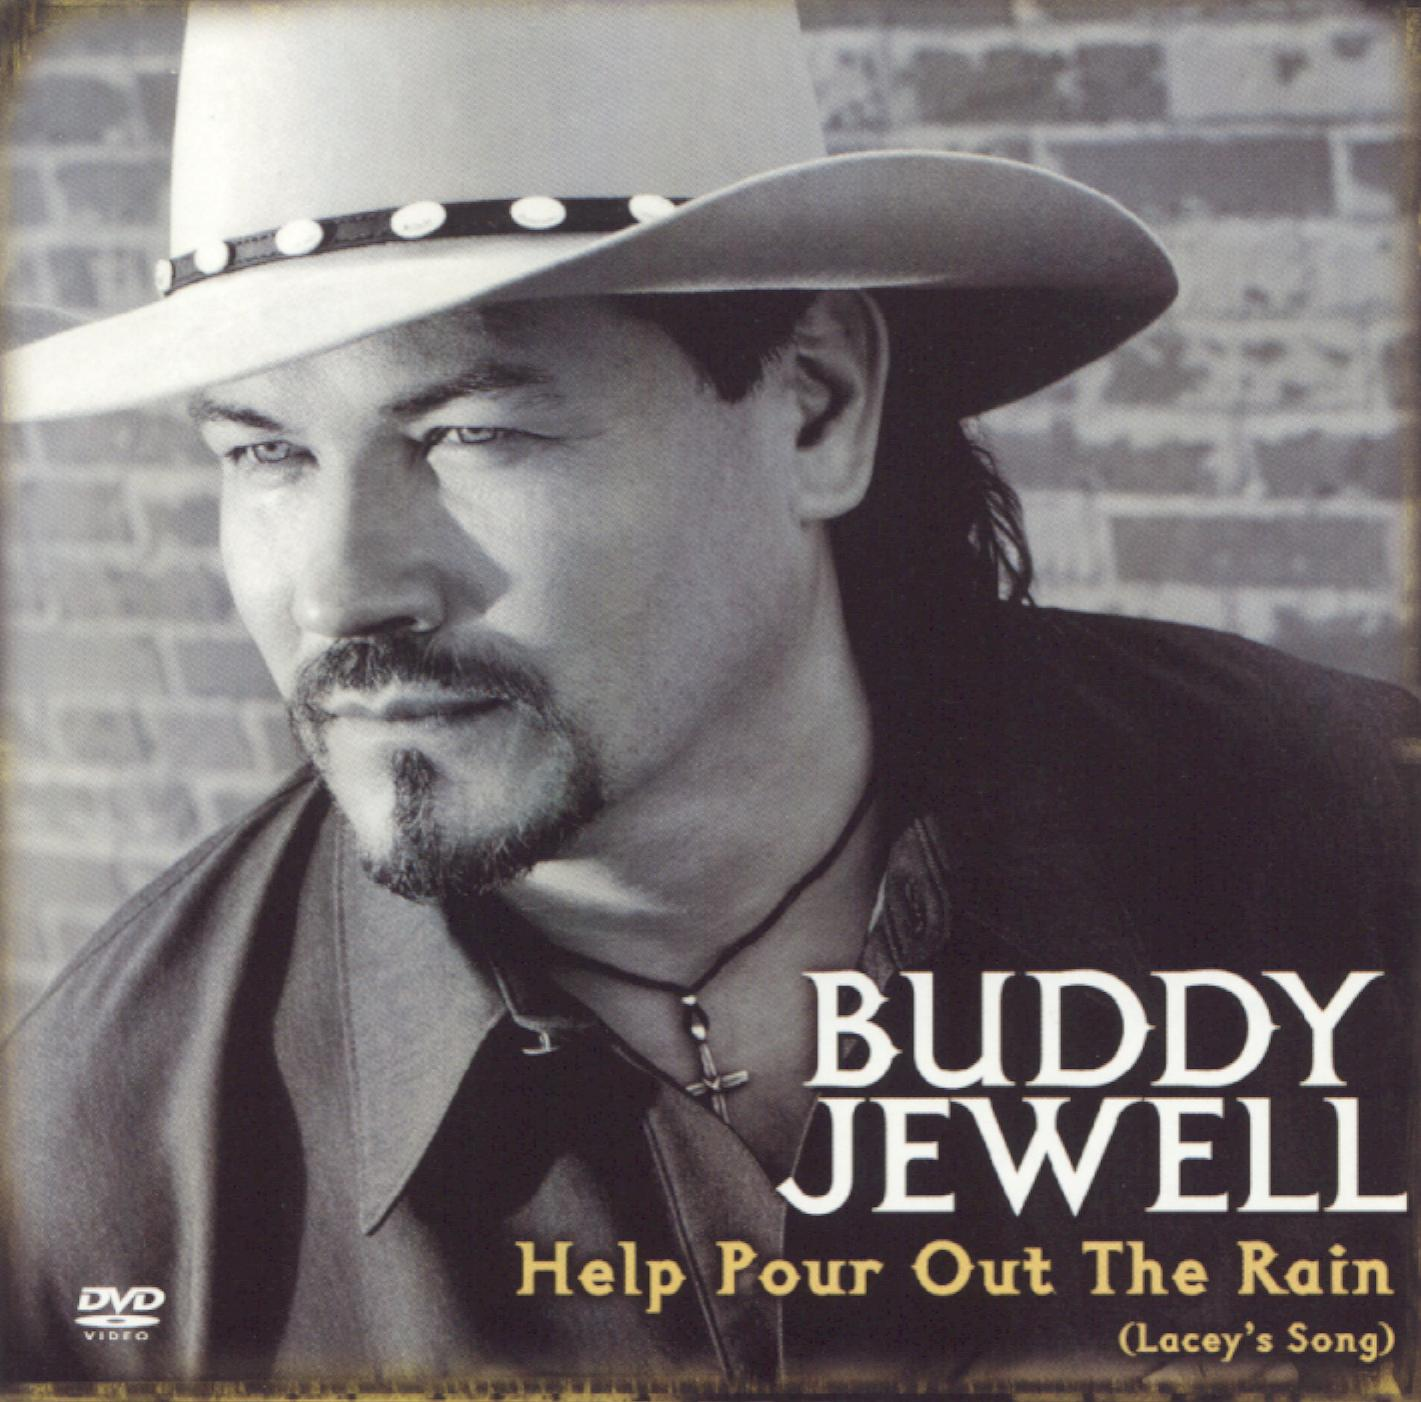 Buddy Jewell: Help Pour Out the Rain: Lacey's Song